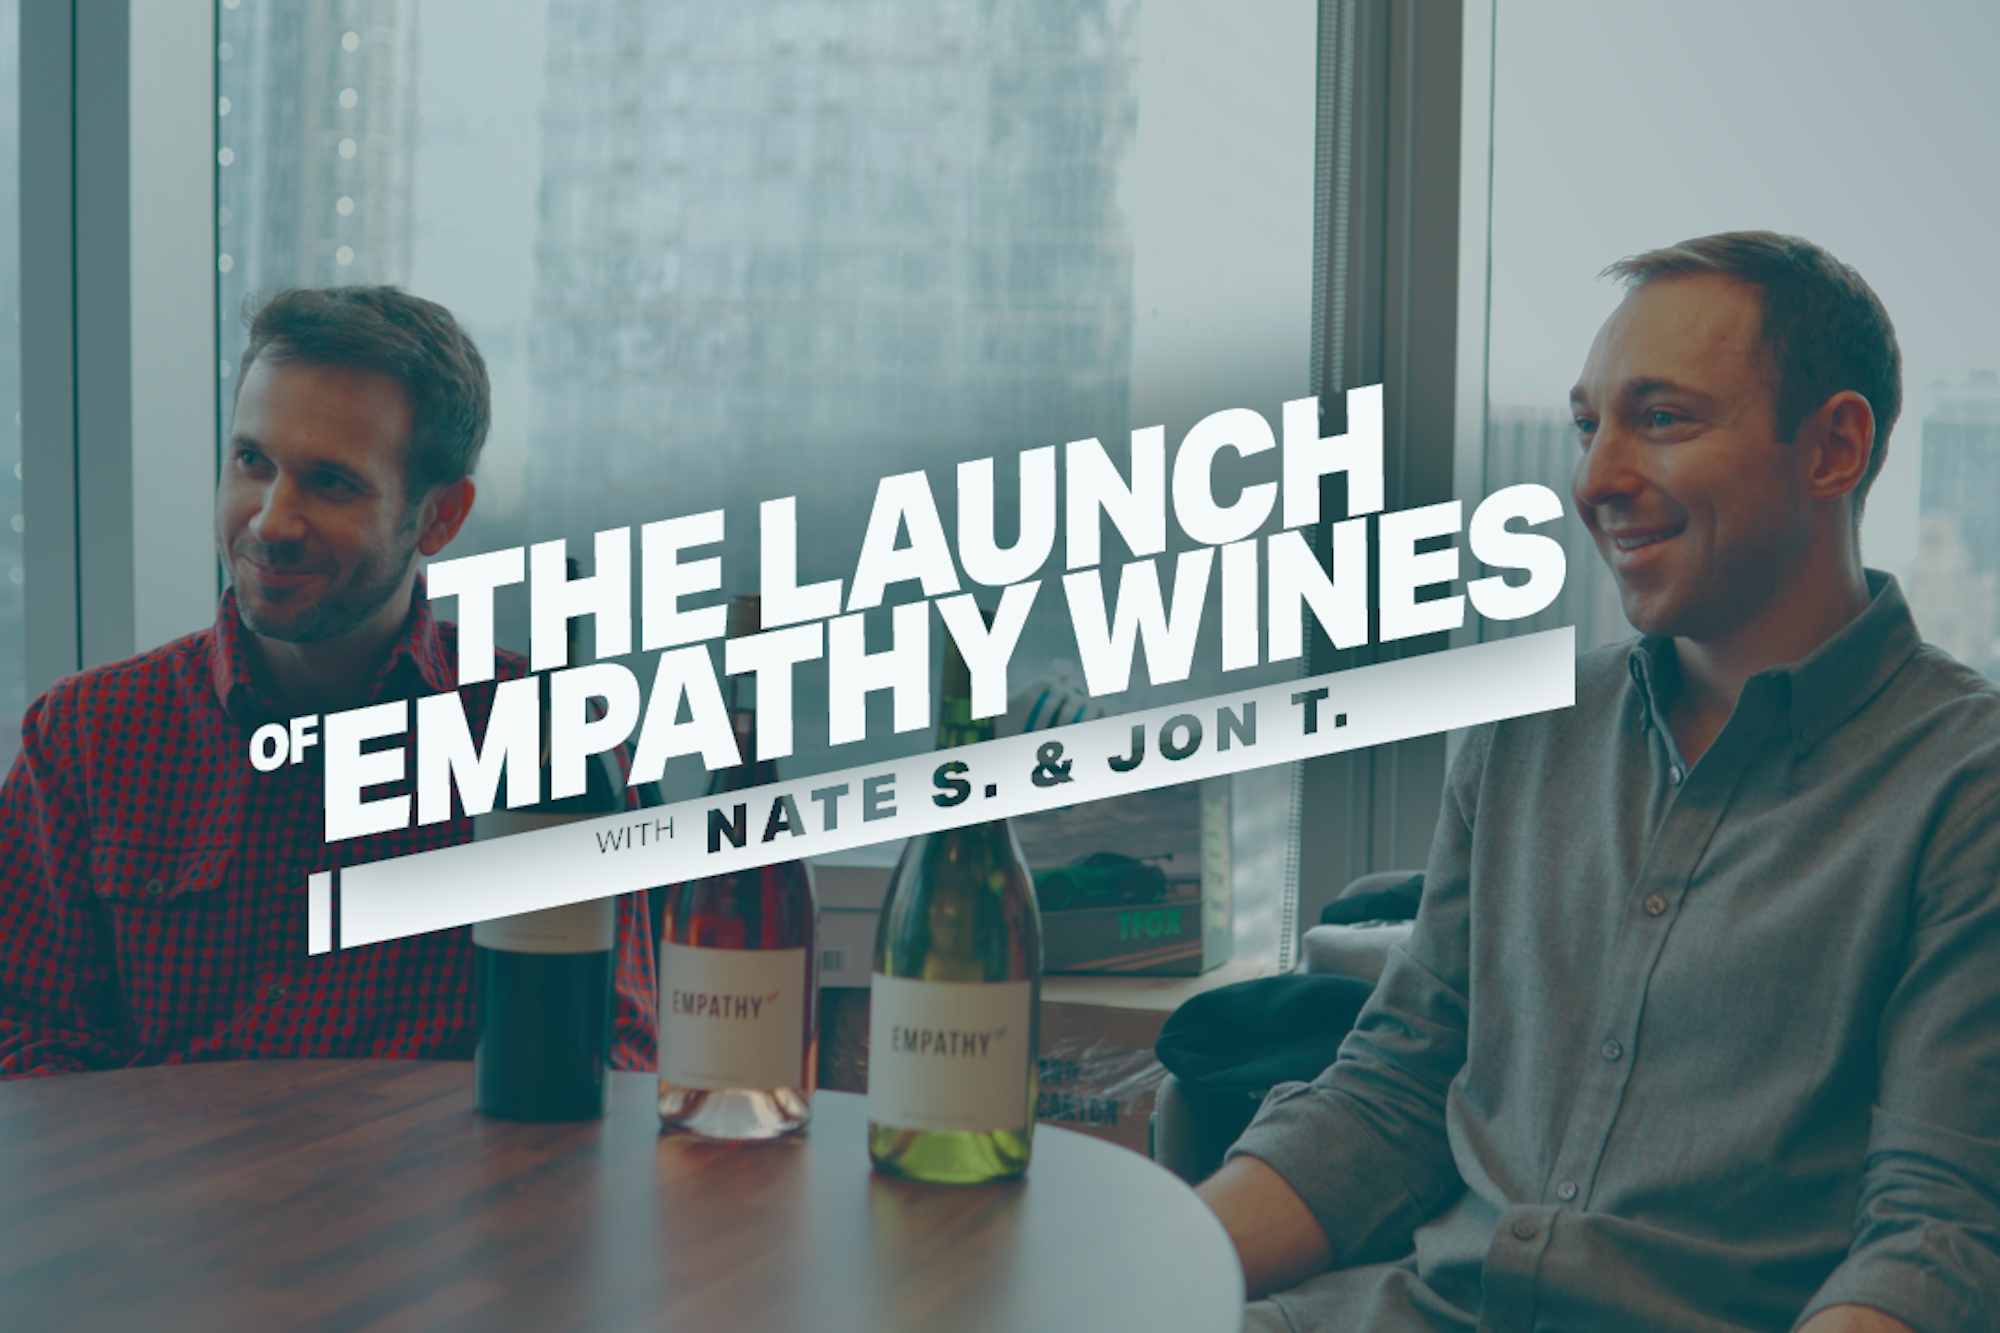 entrepreneur.com - Carlos Gil - The Story Behind the Launch of Gary Vaynerchuk's Empathy Wines